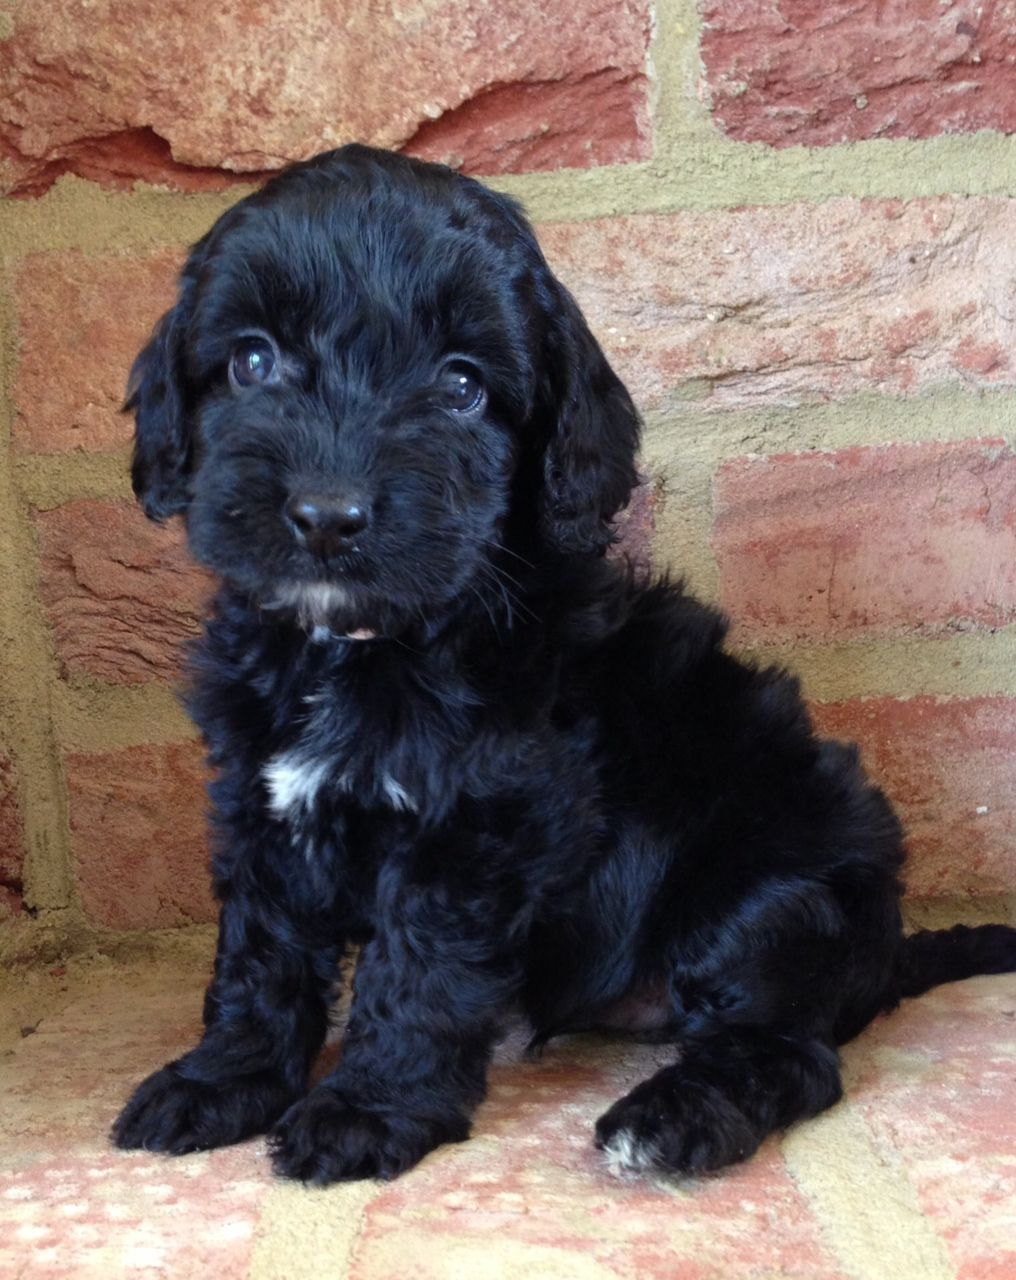 Pin by Rachael Edwards on Puppies | Cockapoo puppies, Black cockapoo